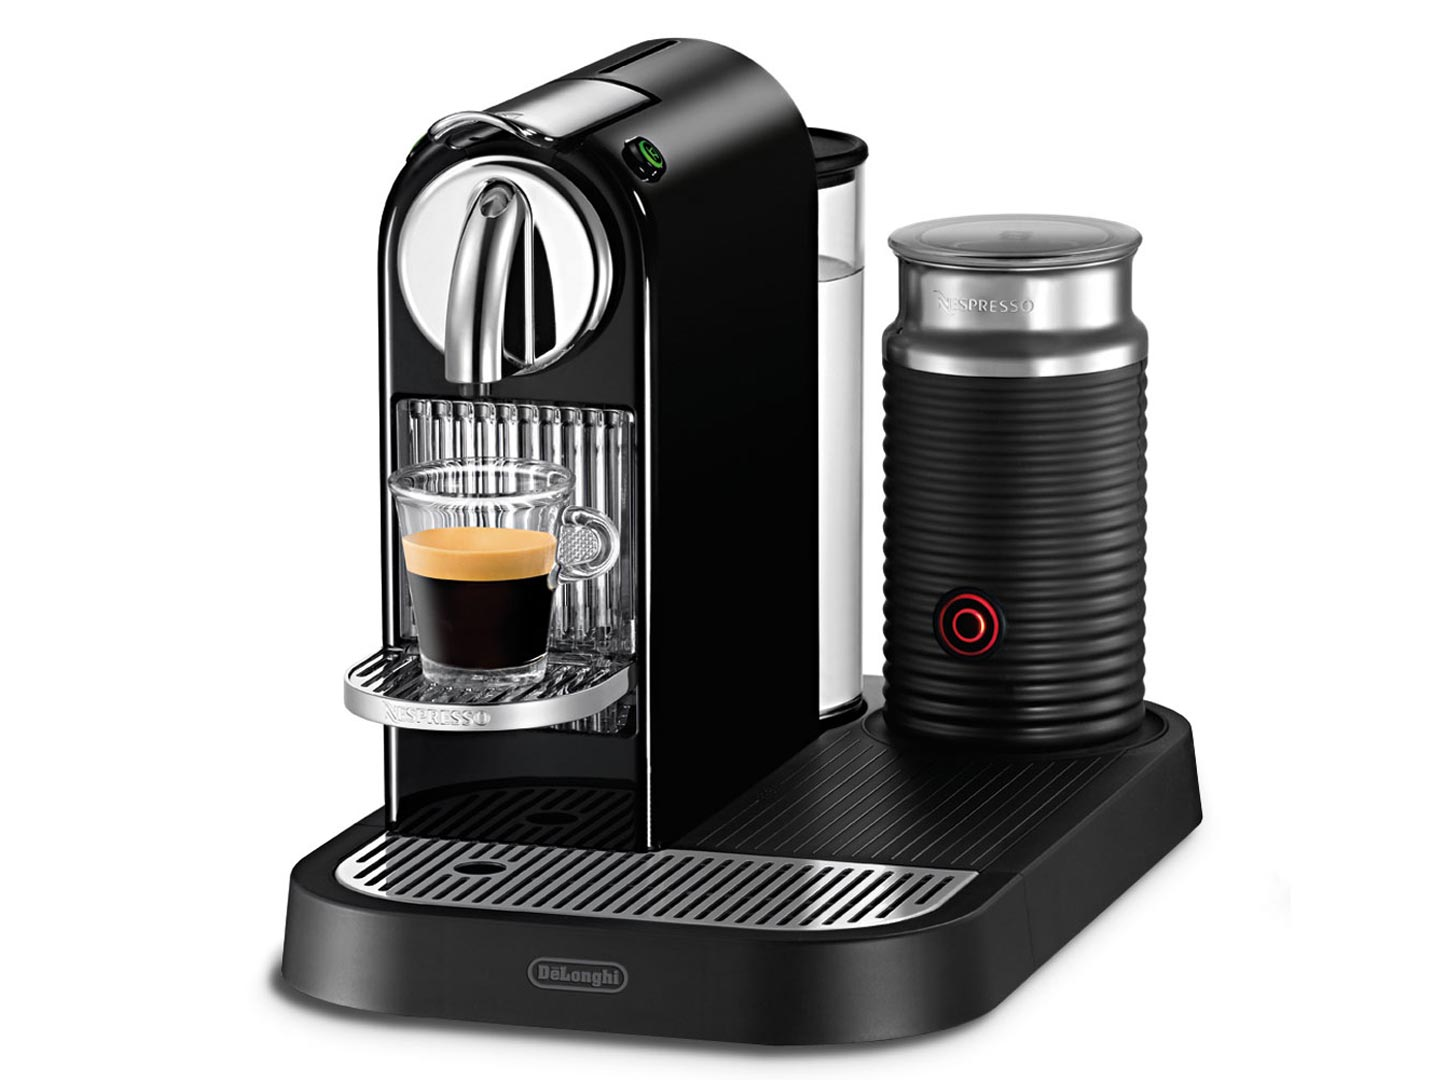 Капсульная кофеварка DeLonghi NESPRESSO CITIZ and MILK EN 266.BAE